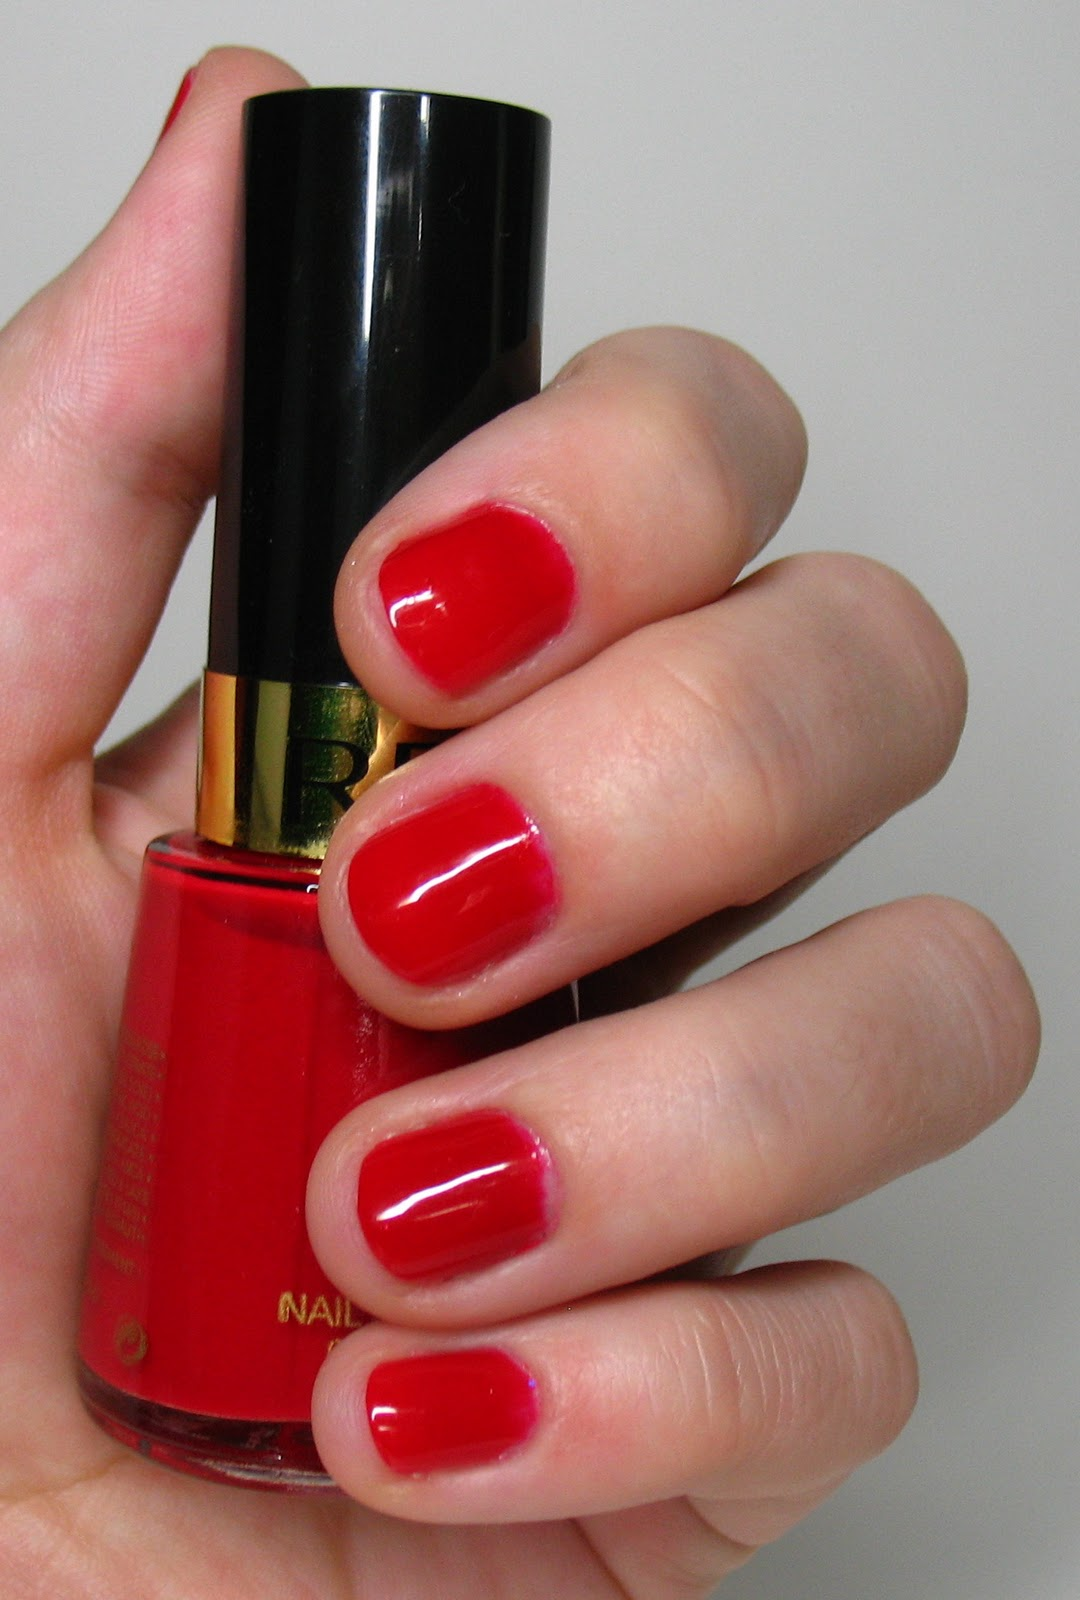 Beyond Just Beauty Revlon Nail Enamel In 675 All Fired Up Review